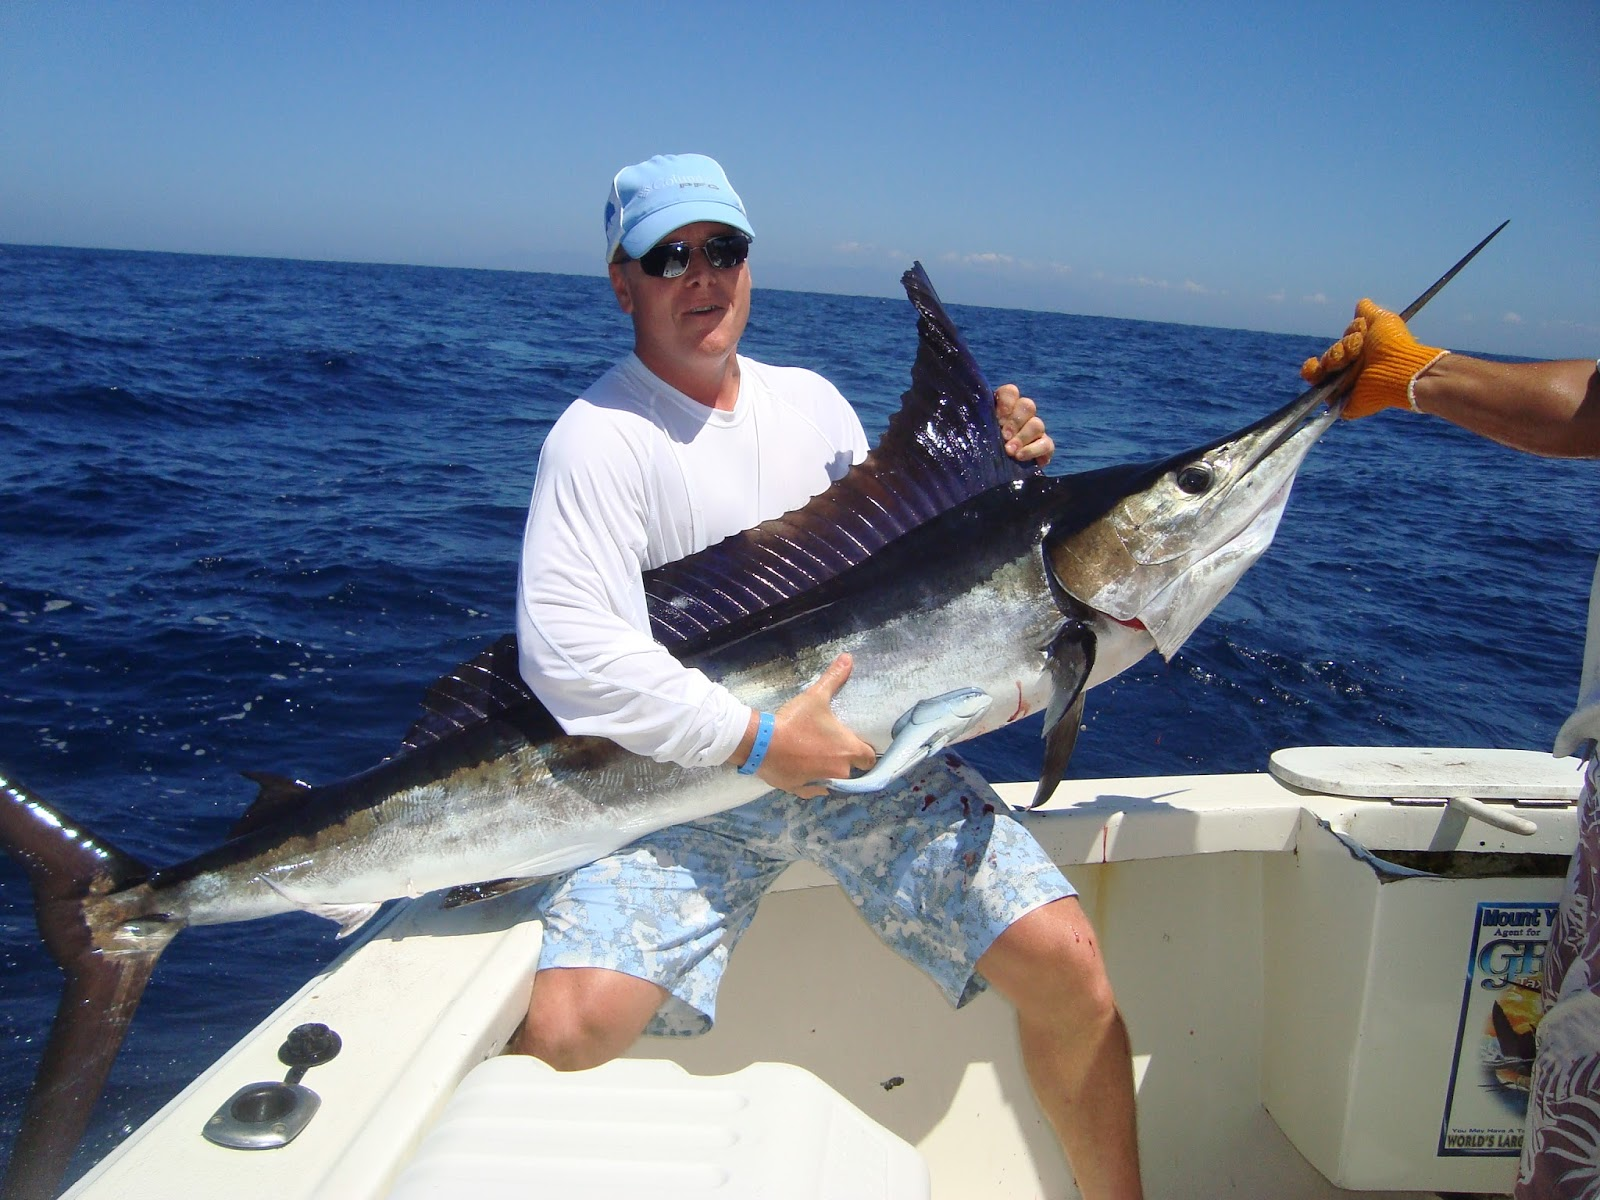 Pisces fleet sportfishing blog marlin bite continues in cabo for Where are the fish biting near me